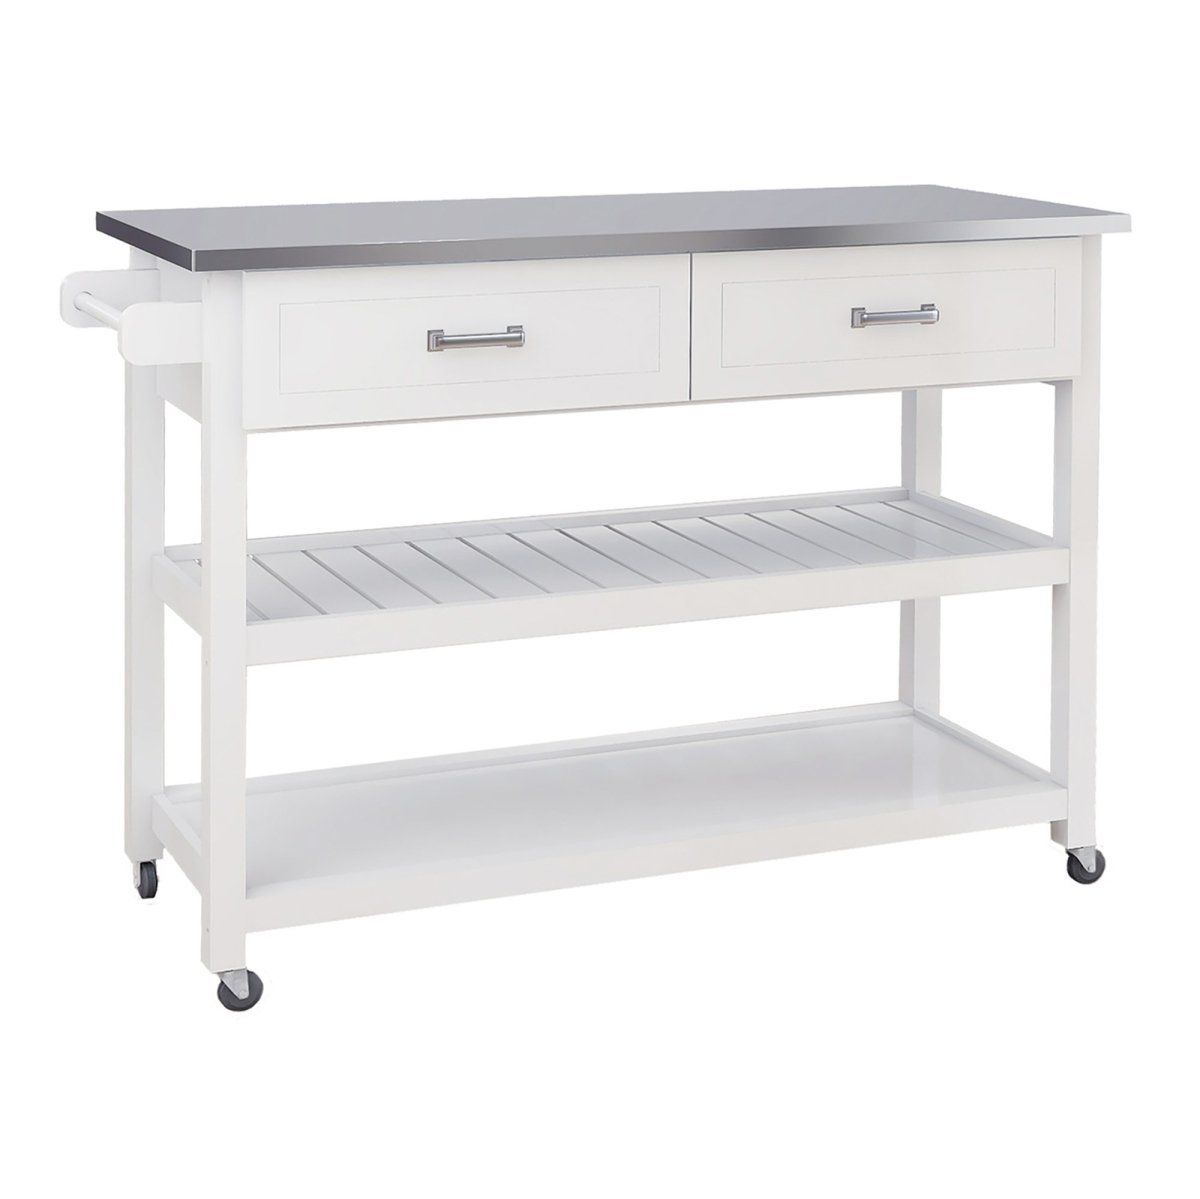 Brodnax Kitchen Cart With Stainless Steel Top In 2021 Kitchen Cart Rolling Kitchen Cart Cabinet Styles